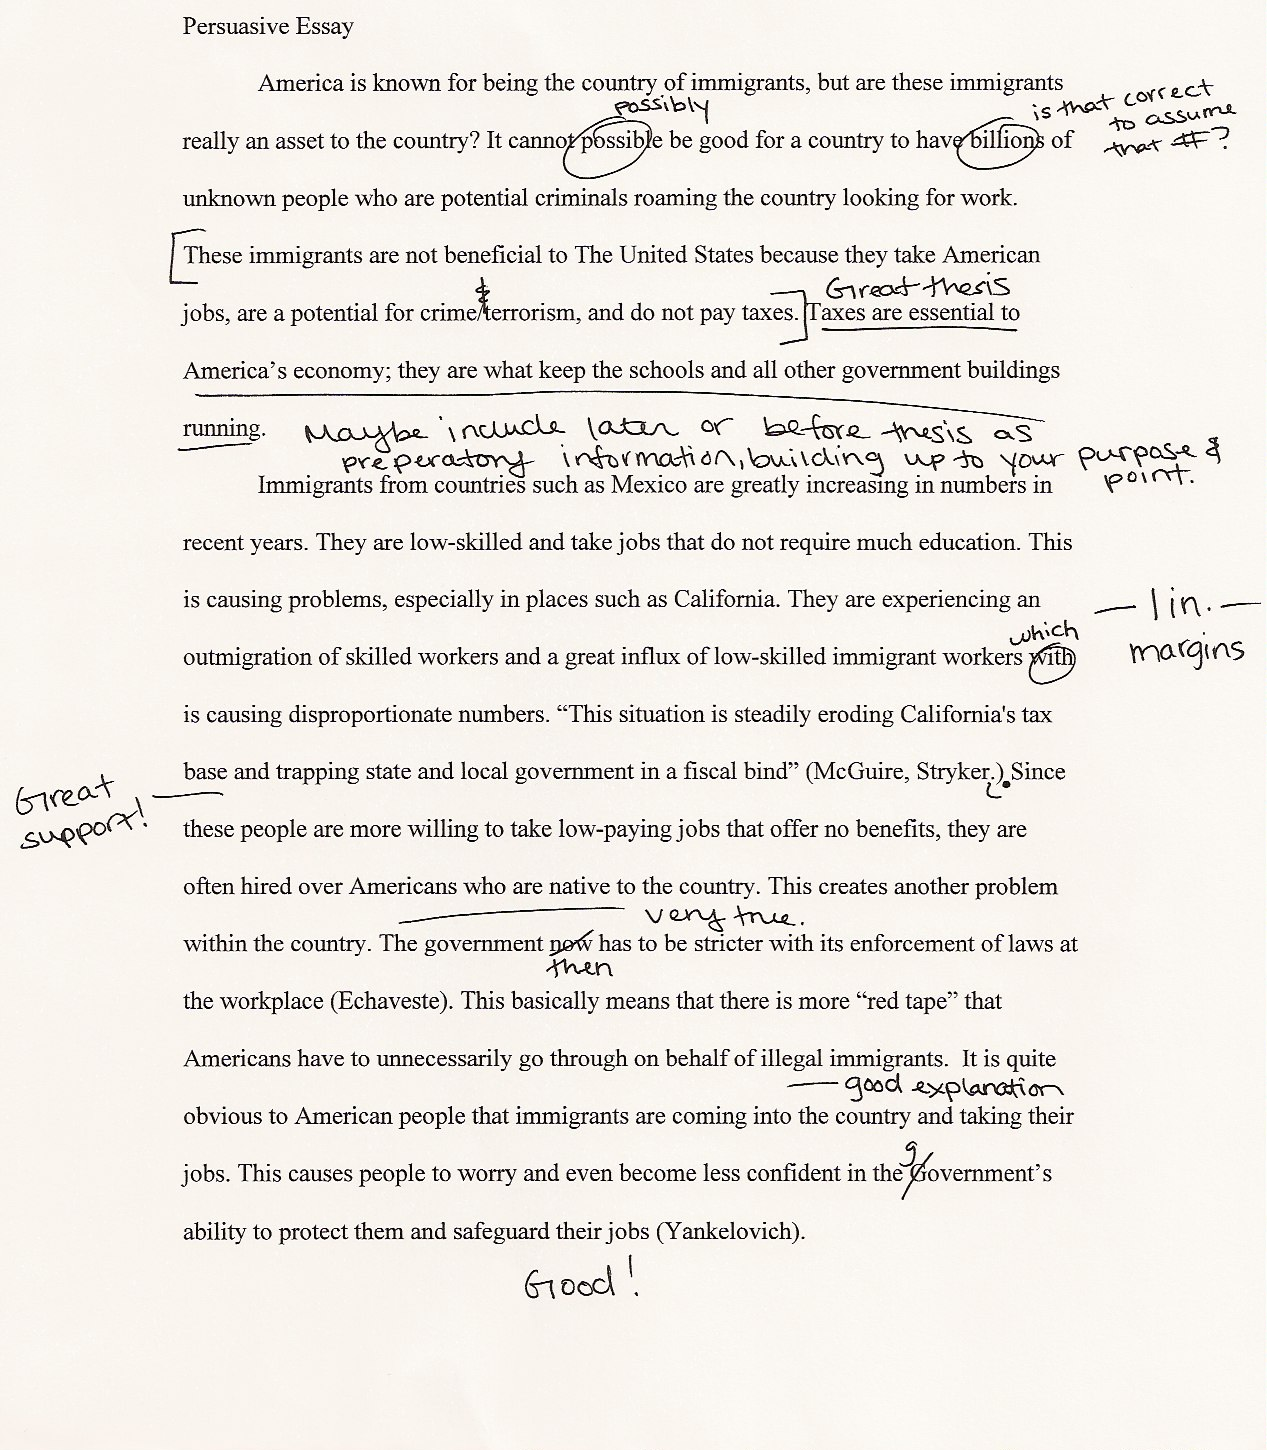 college essay thesis essay thesis statement types of thesis list methods for effective argumentative essay college essay how to write a thesis statement college essay